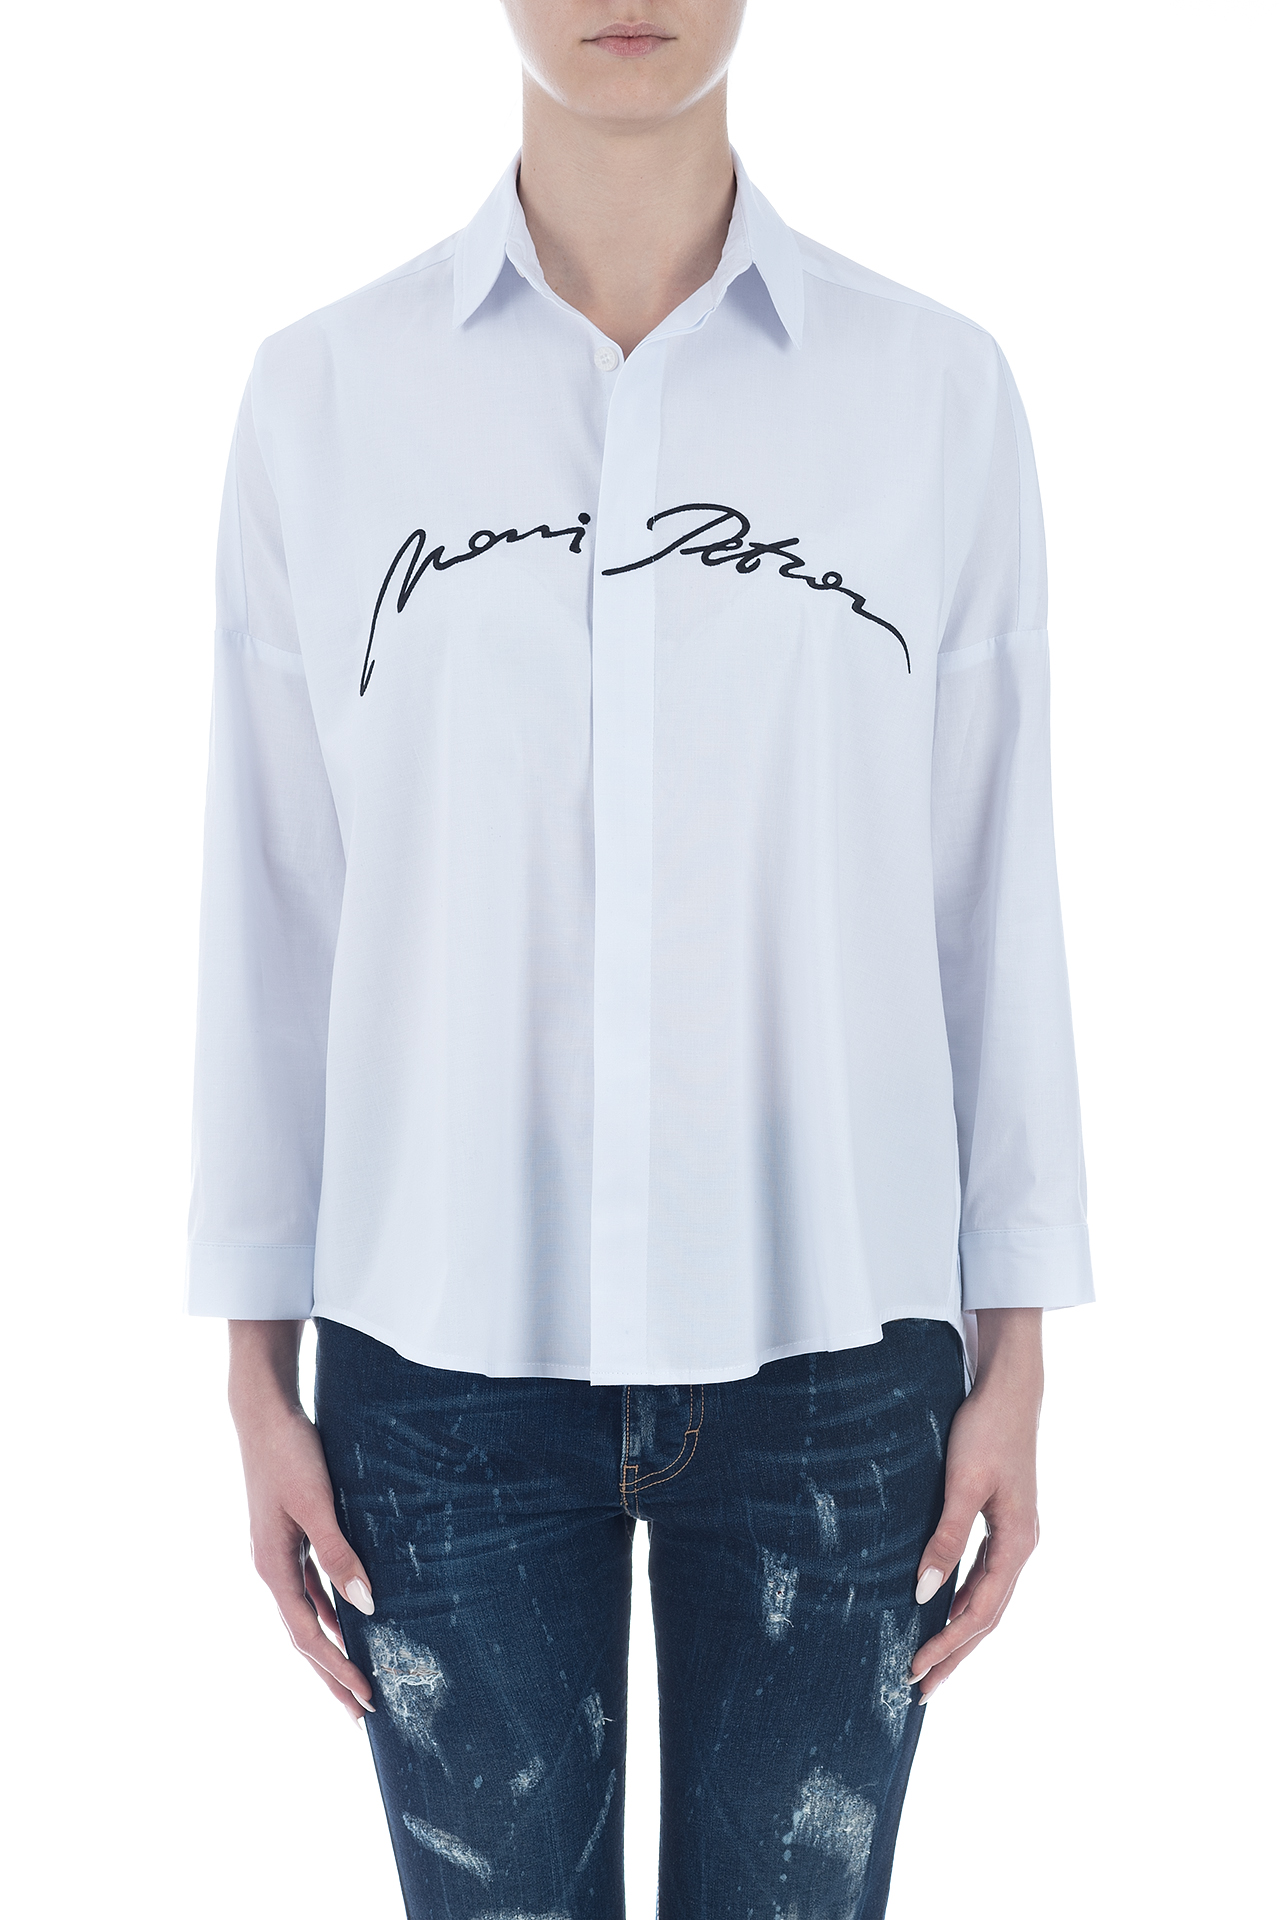 SHIRT SIGNATURE WHITE 2